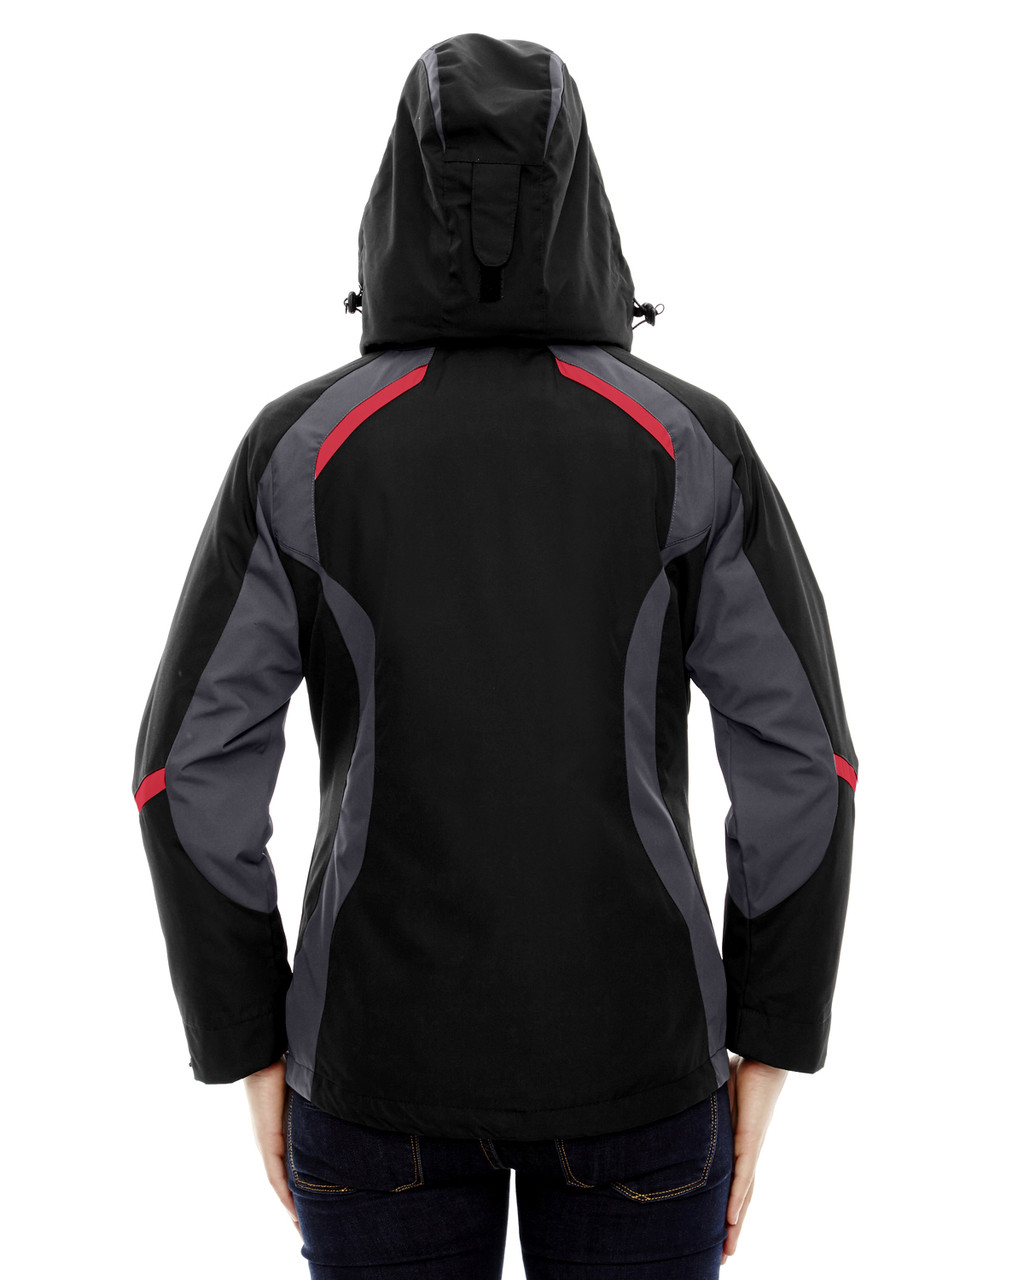 Black/Classic Red, Back - 78195 Ash City - North End Ladies' Height 3-in-1 Jacket with Insulated Liner | Blankclothing.ca